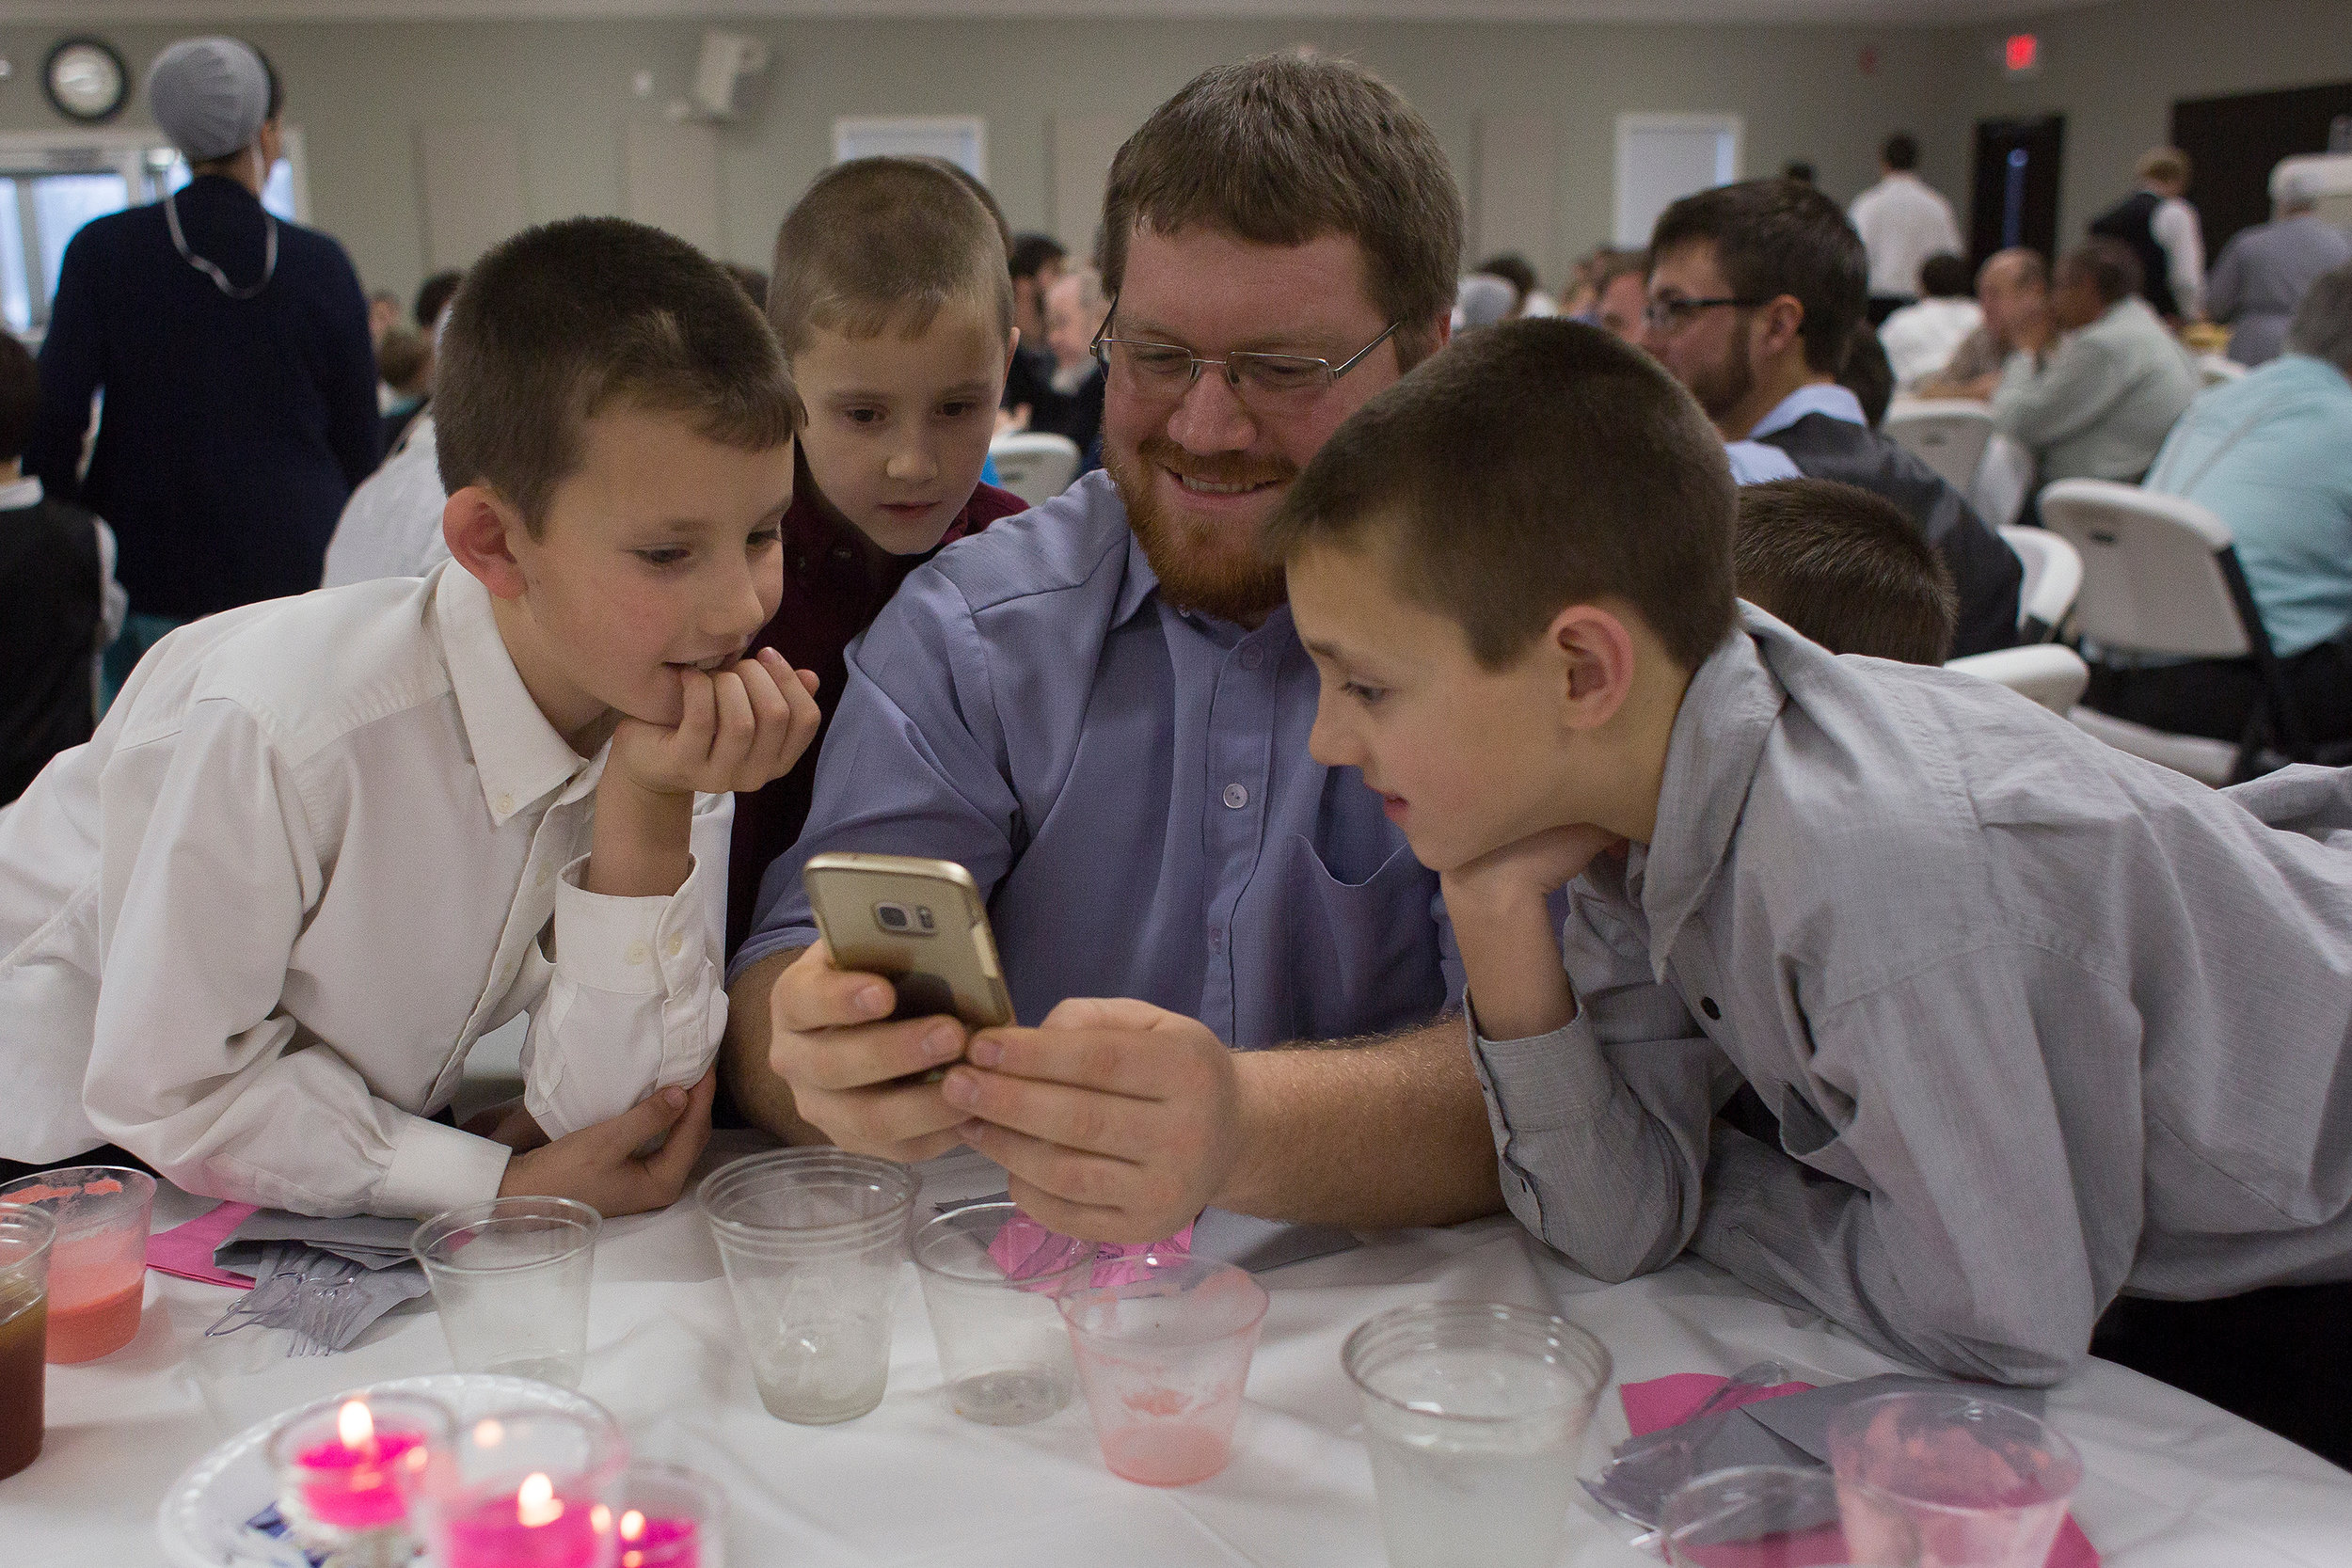 Jonathan Beachy of Flat Rock, Illinois, showed hunting videos to the Knepp children — Darius, Tyler, Zachary, and Cody — on his phone during a wedding reception Dec. 22 at Berea Mennonite Church in Cannelburg. The Knepps do not have a television or radio in the home and computer access is limited to roughly 20 minutes per child each week. Although the Knepp family does make use of email and the internet, Stanley said social media platforms such as Facebook, Twitter and Instagram are prohibited by their church.